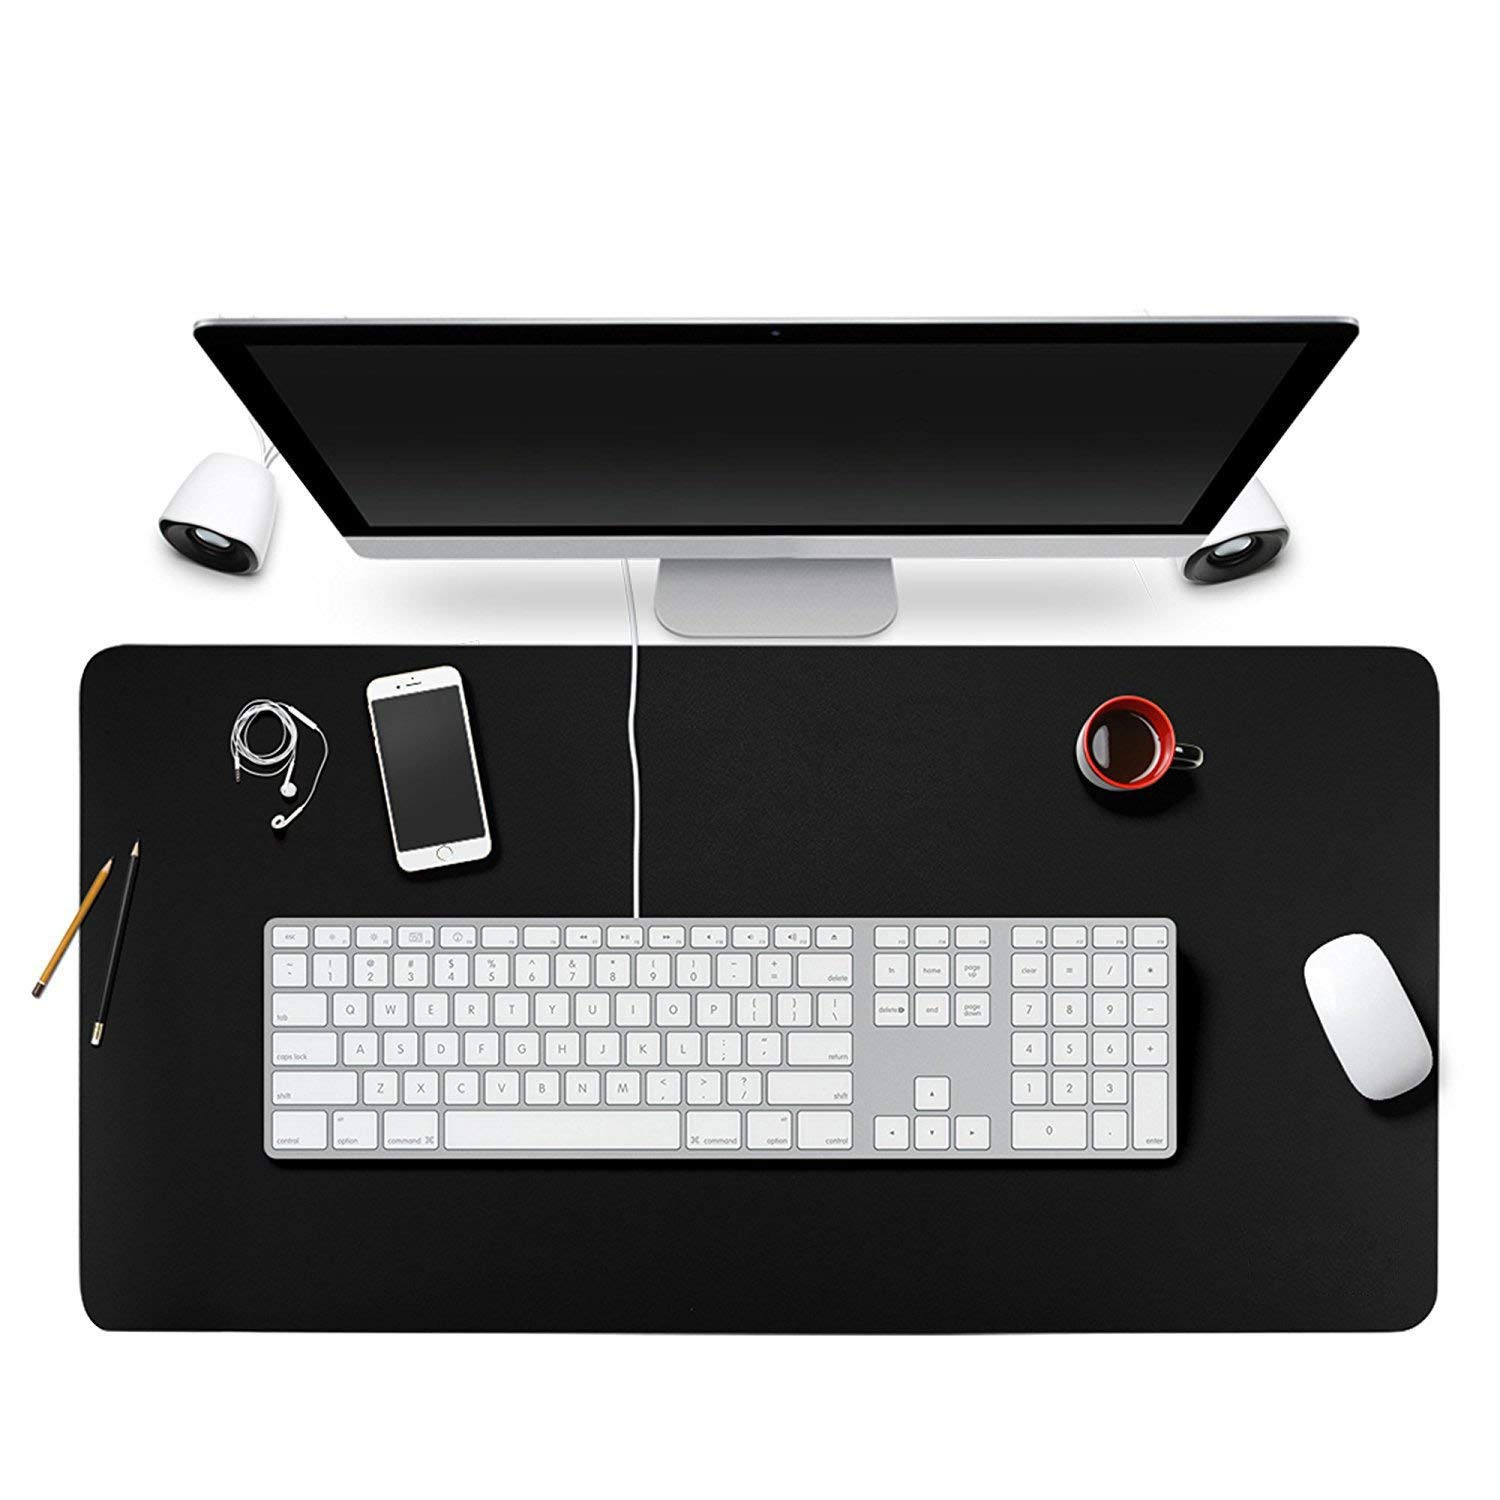 BUBM Desk Pad Protector 35'' x 18'', PU Leather Desk Mat Desk Blotters Mouse Pad Organizer with Comfortable Writing Surface for Office and Home(Black) by BUBM